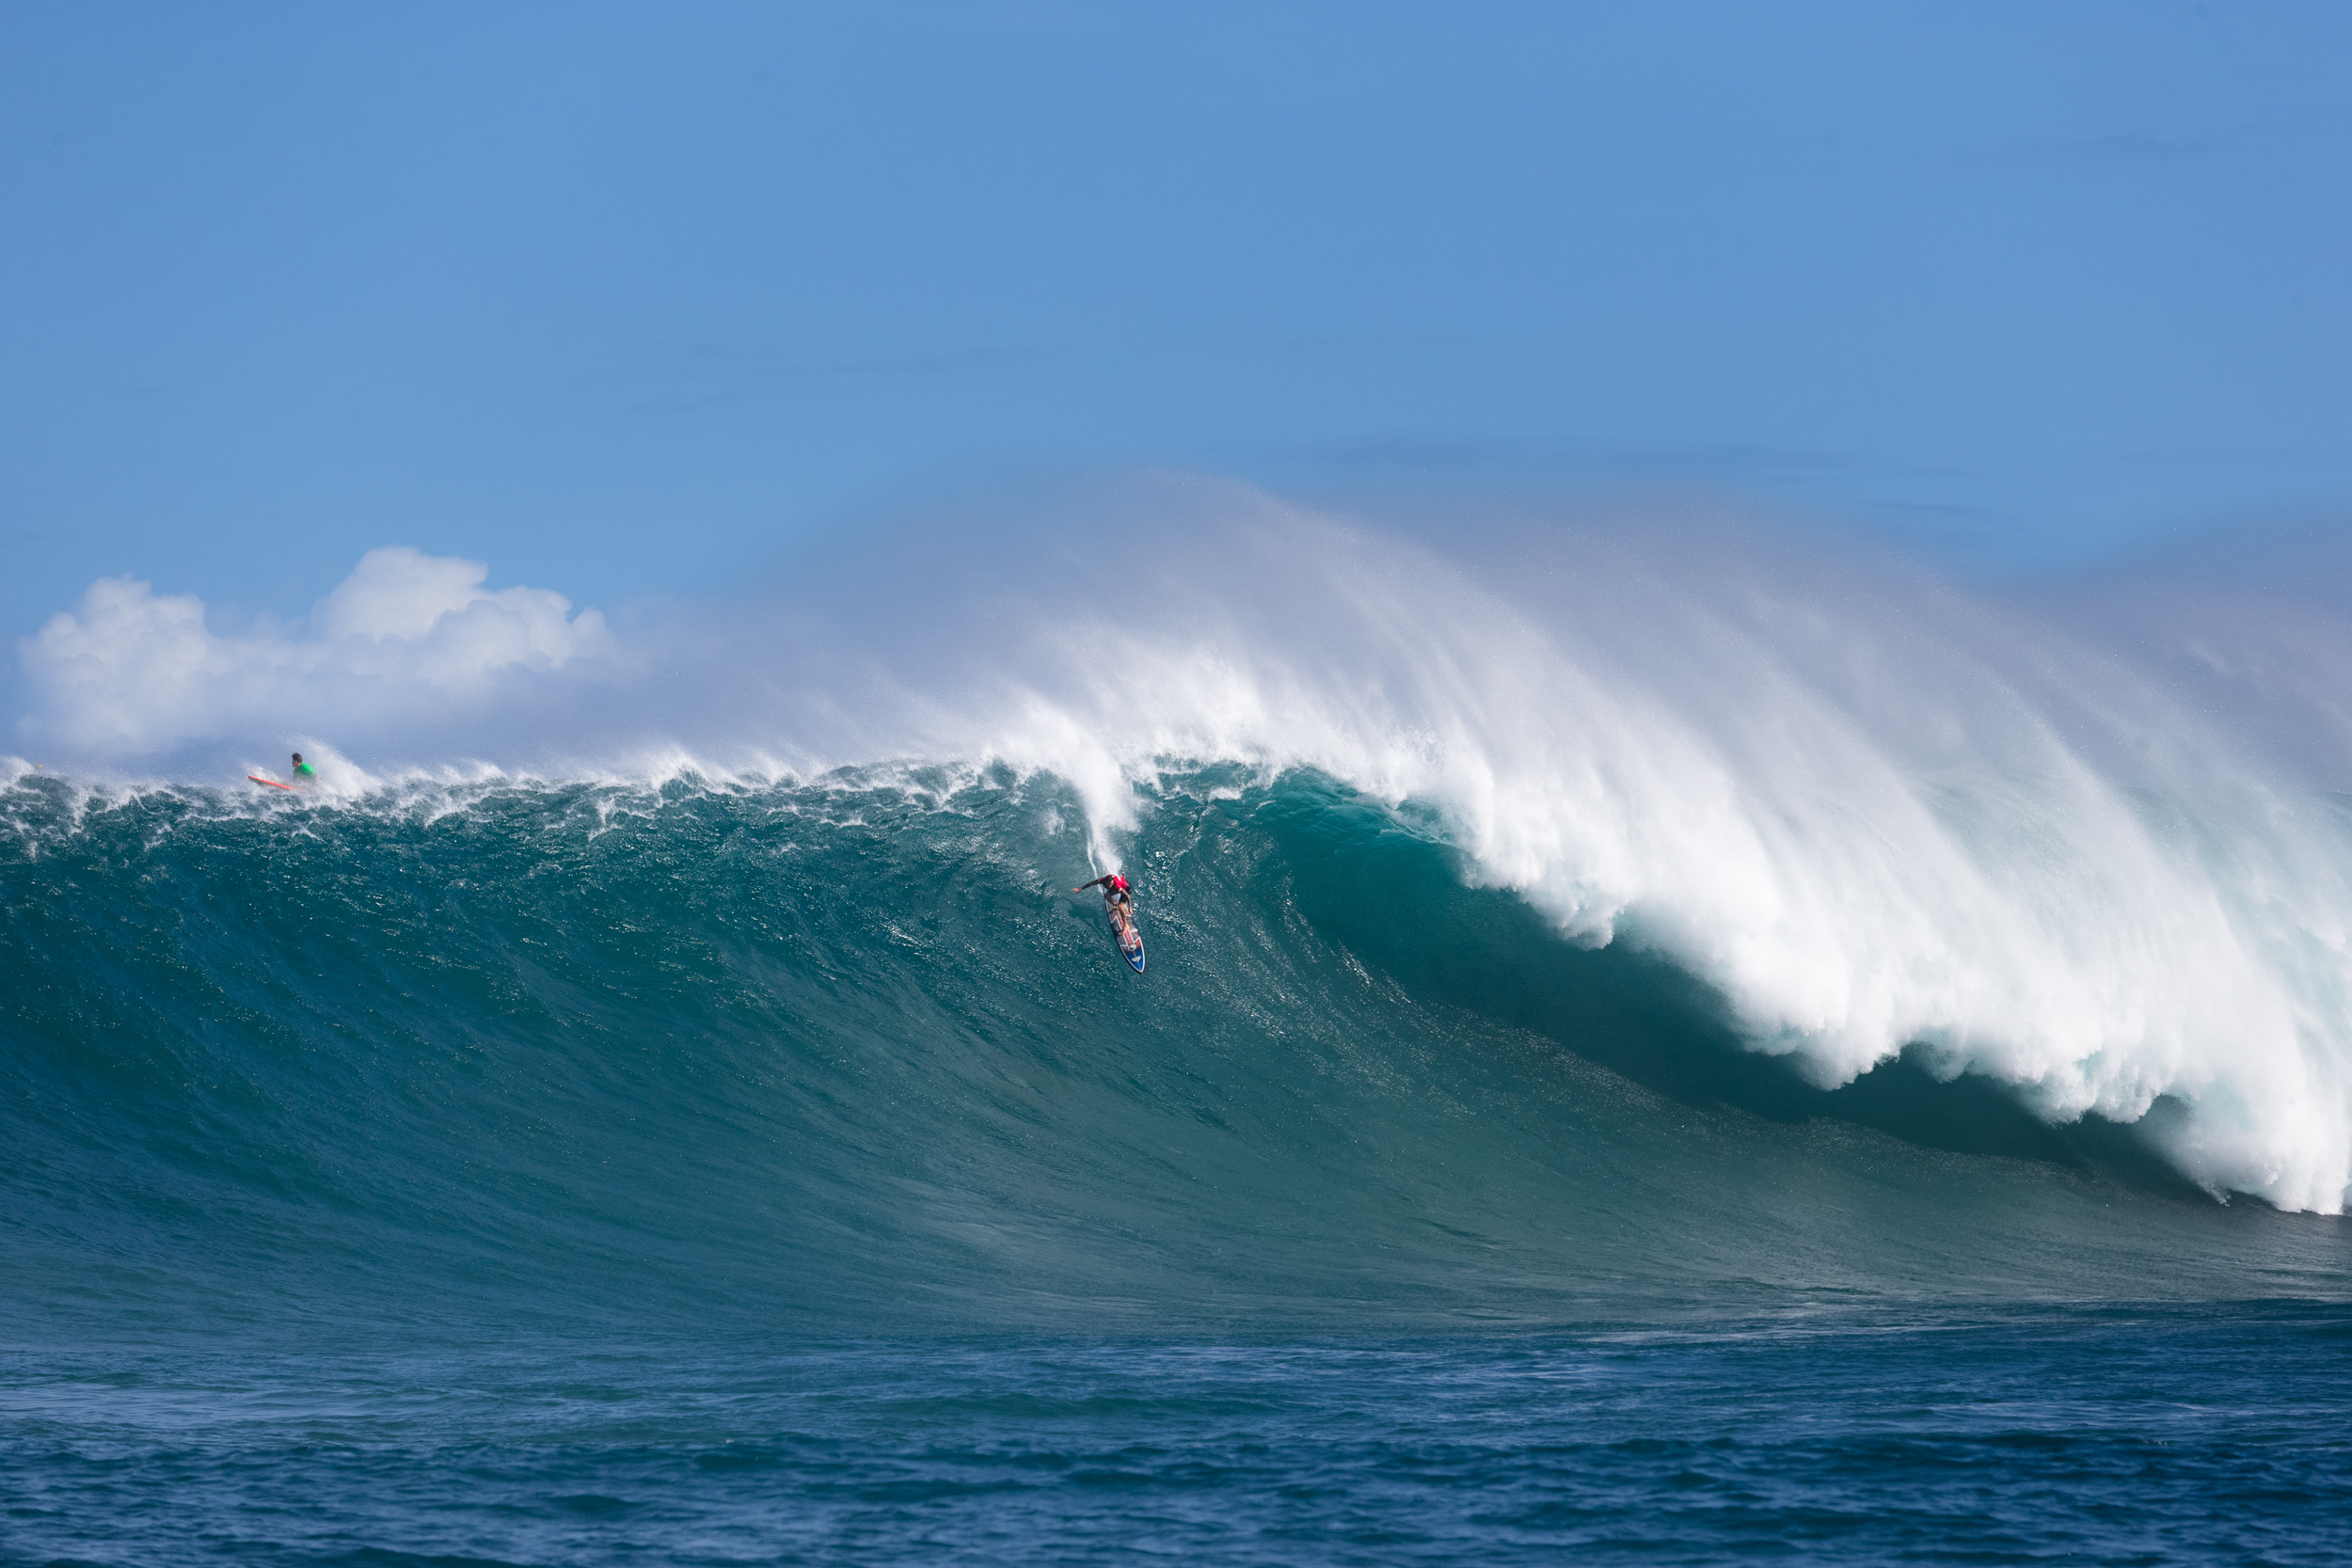 Do The Big Wave Tour Judges Need To Rethink Their Criteria